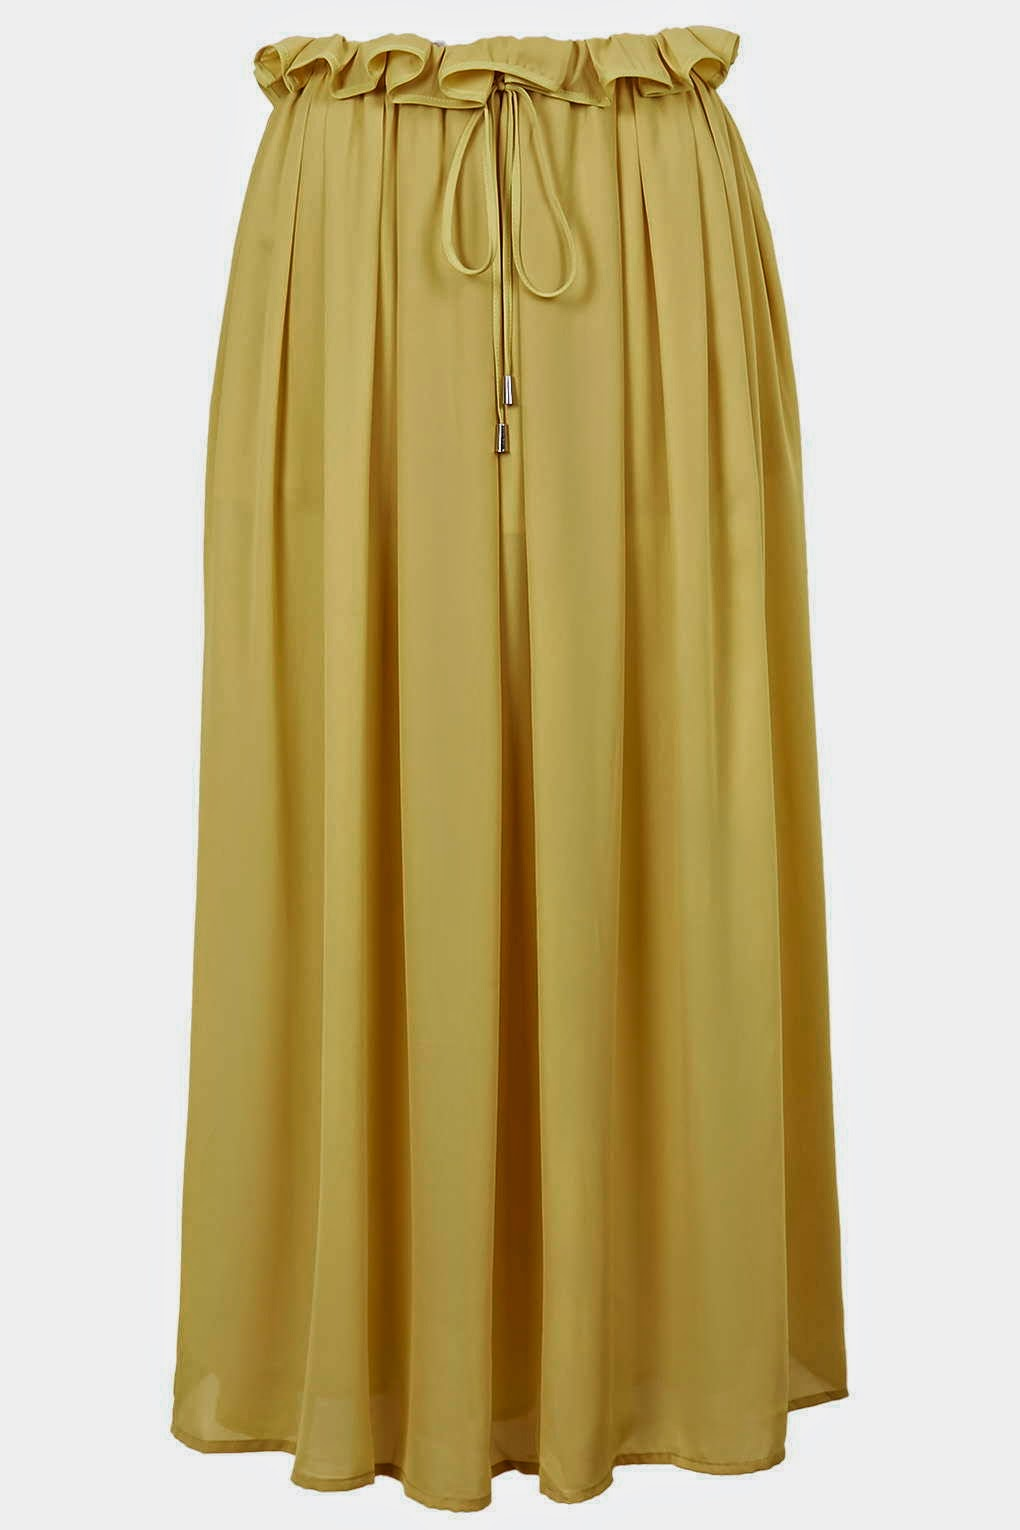 yellow skirt jovonna,